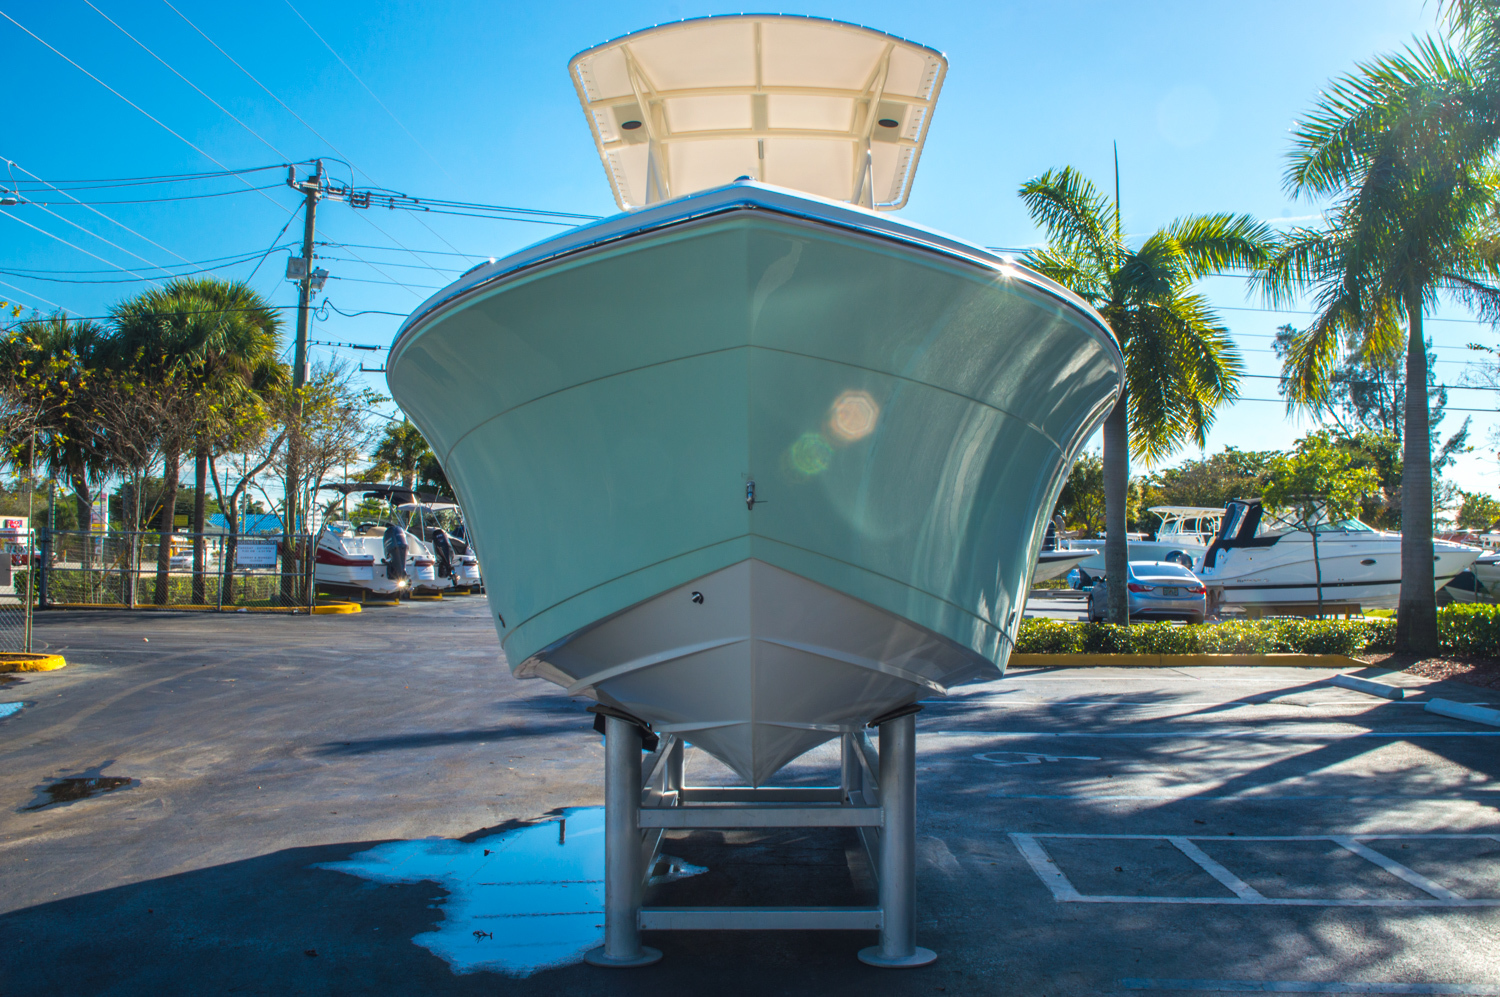 Thumbnail 2 for New 2016 Cobia 201 Center Console boat for sale in Miami, FL